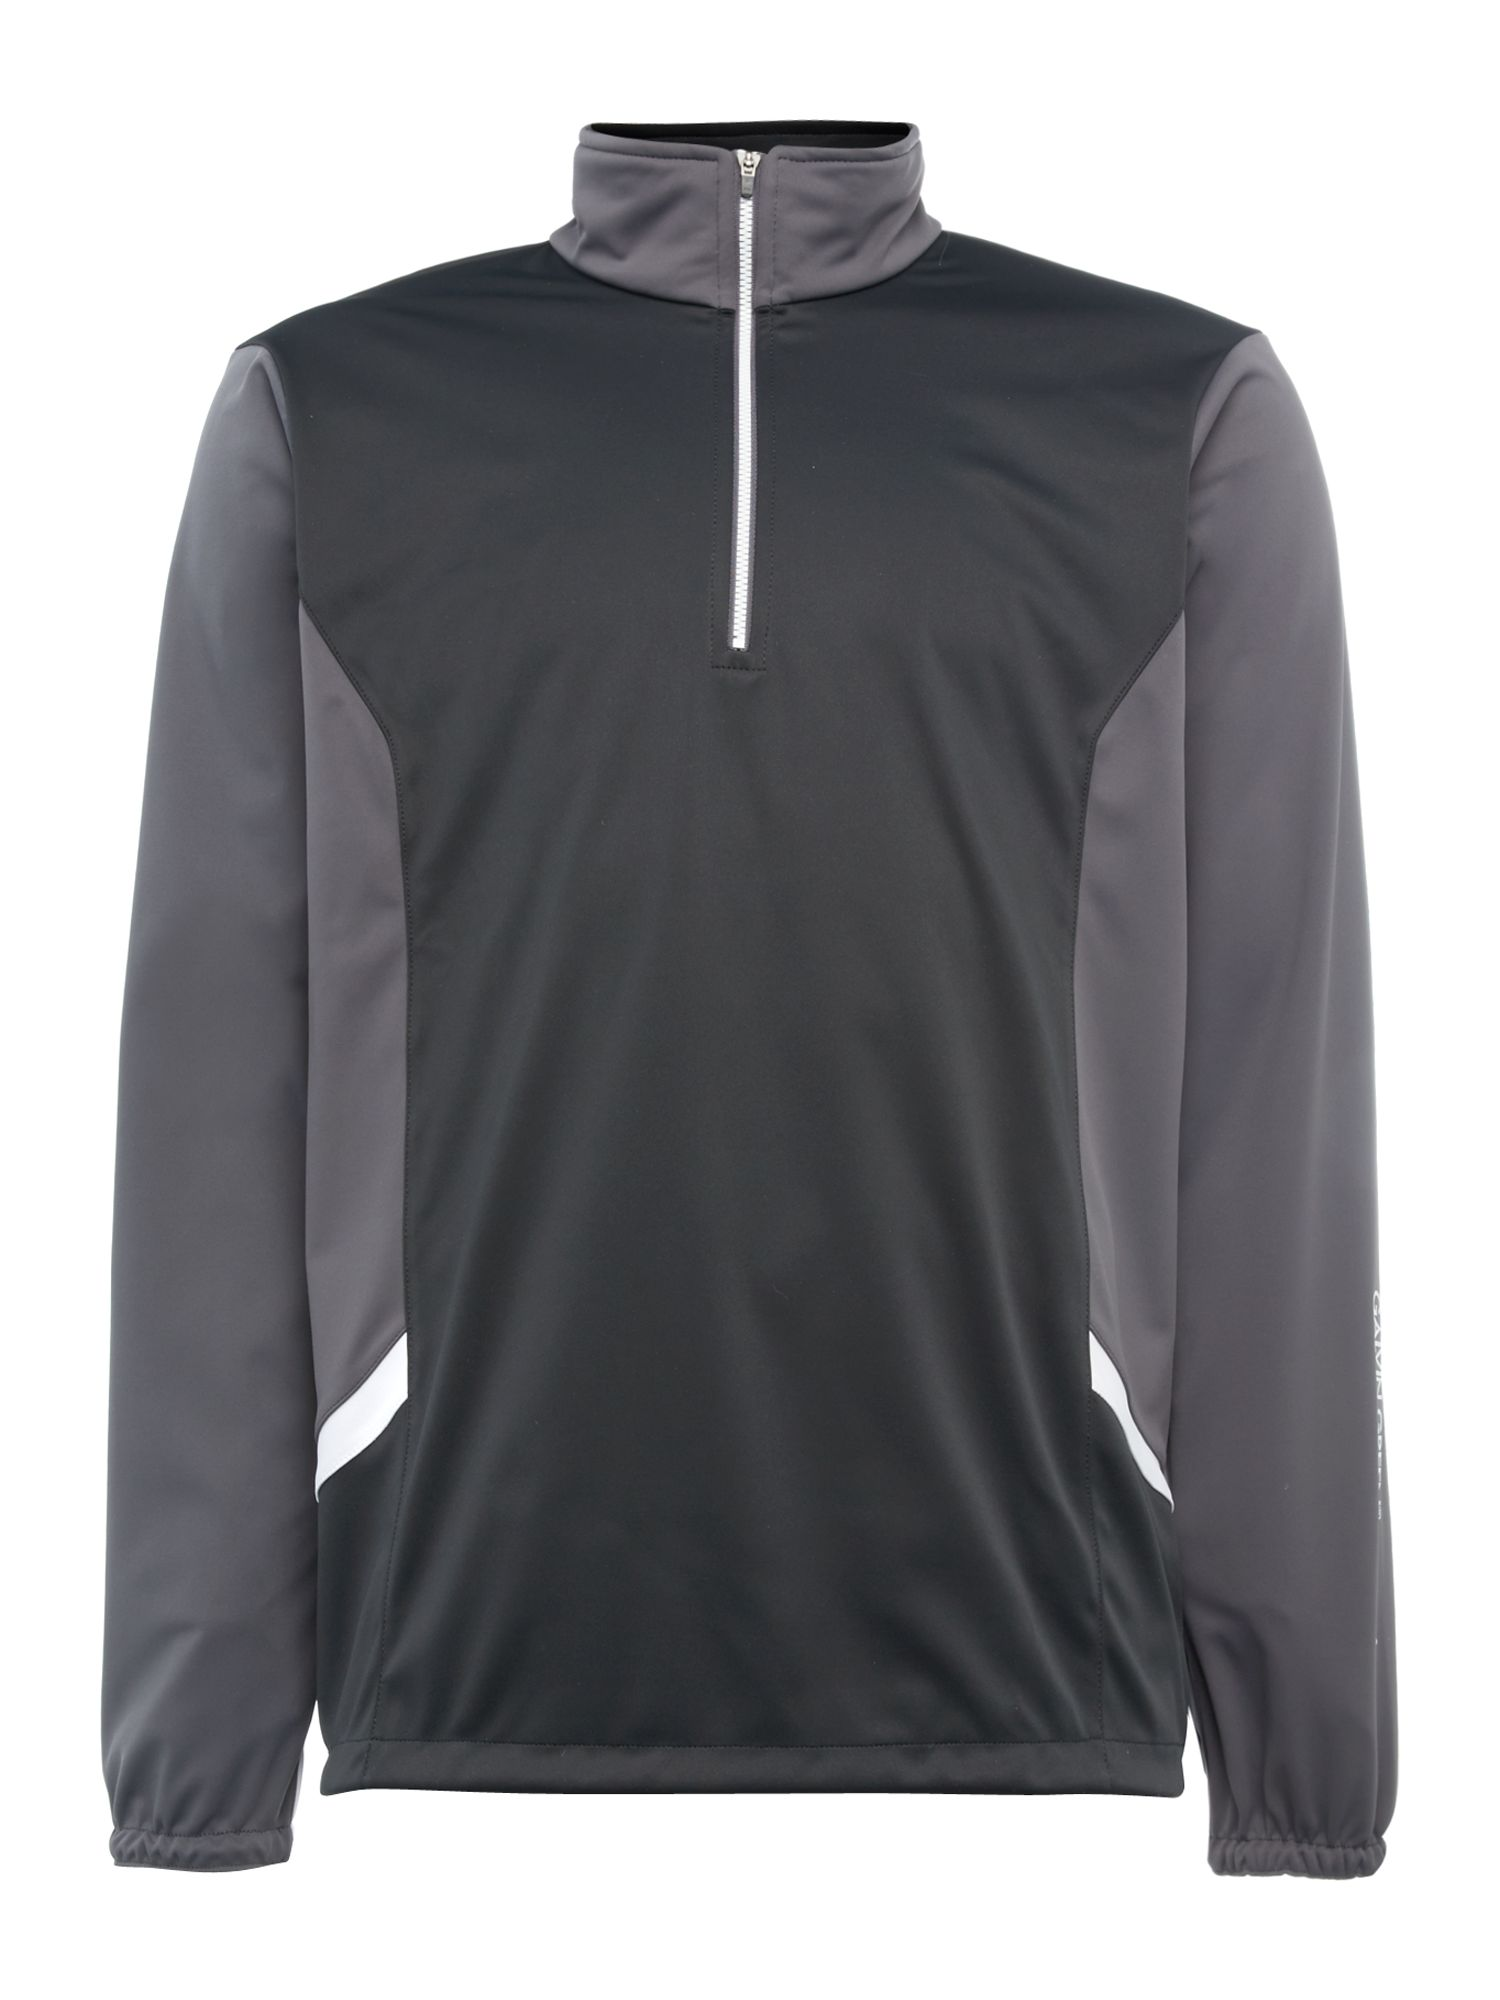 Brett half zip windstopper